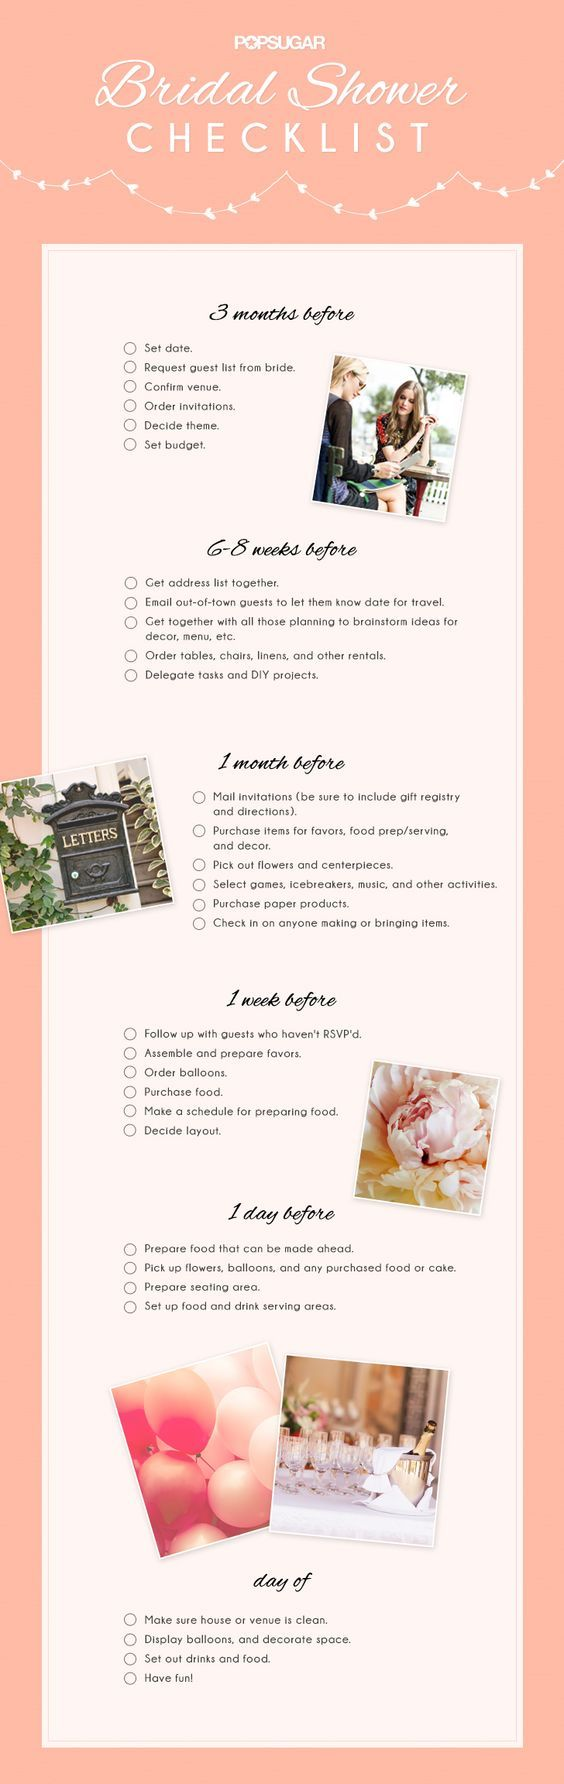 I don't think that a Bridal Shower needs to be this detailed, but a checklist is still nice nonetheless.: